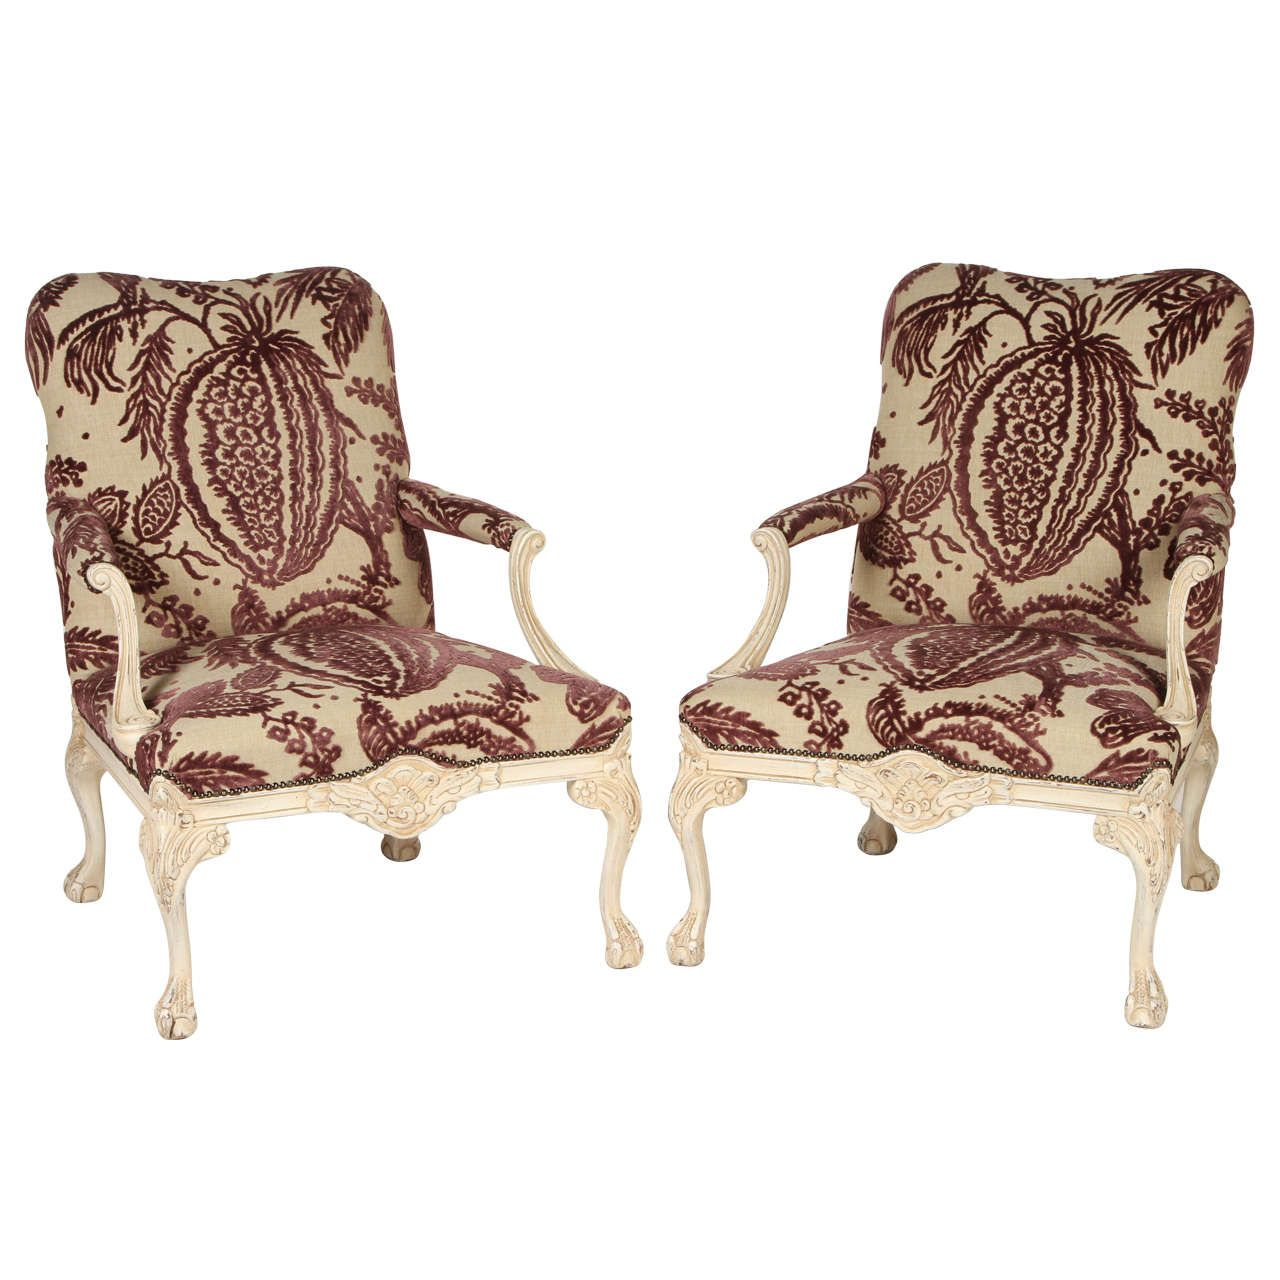 pair of george iii style library chairs | armchairs, manuel